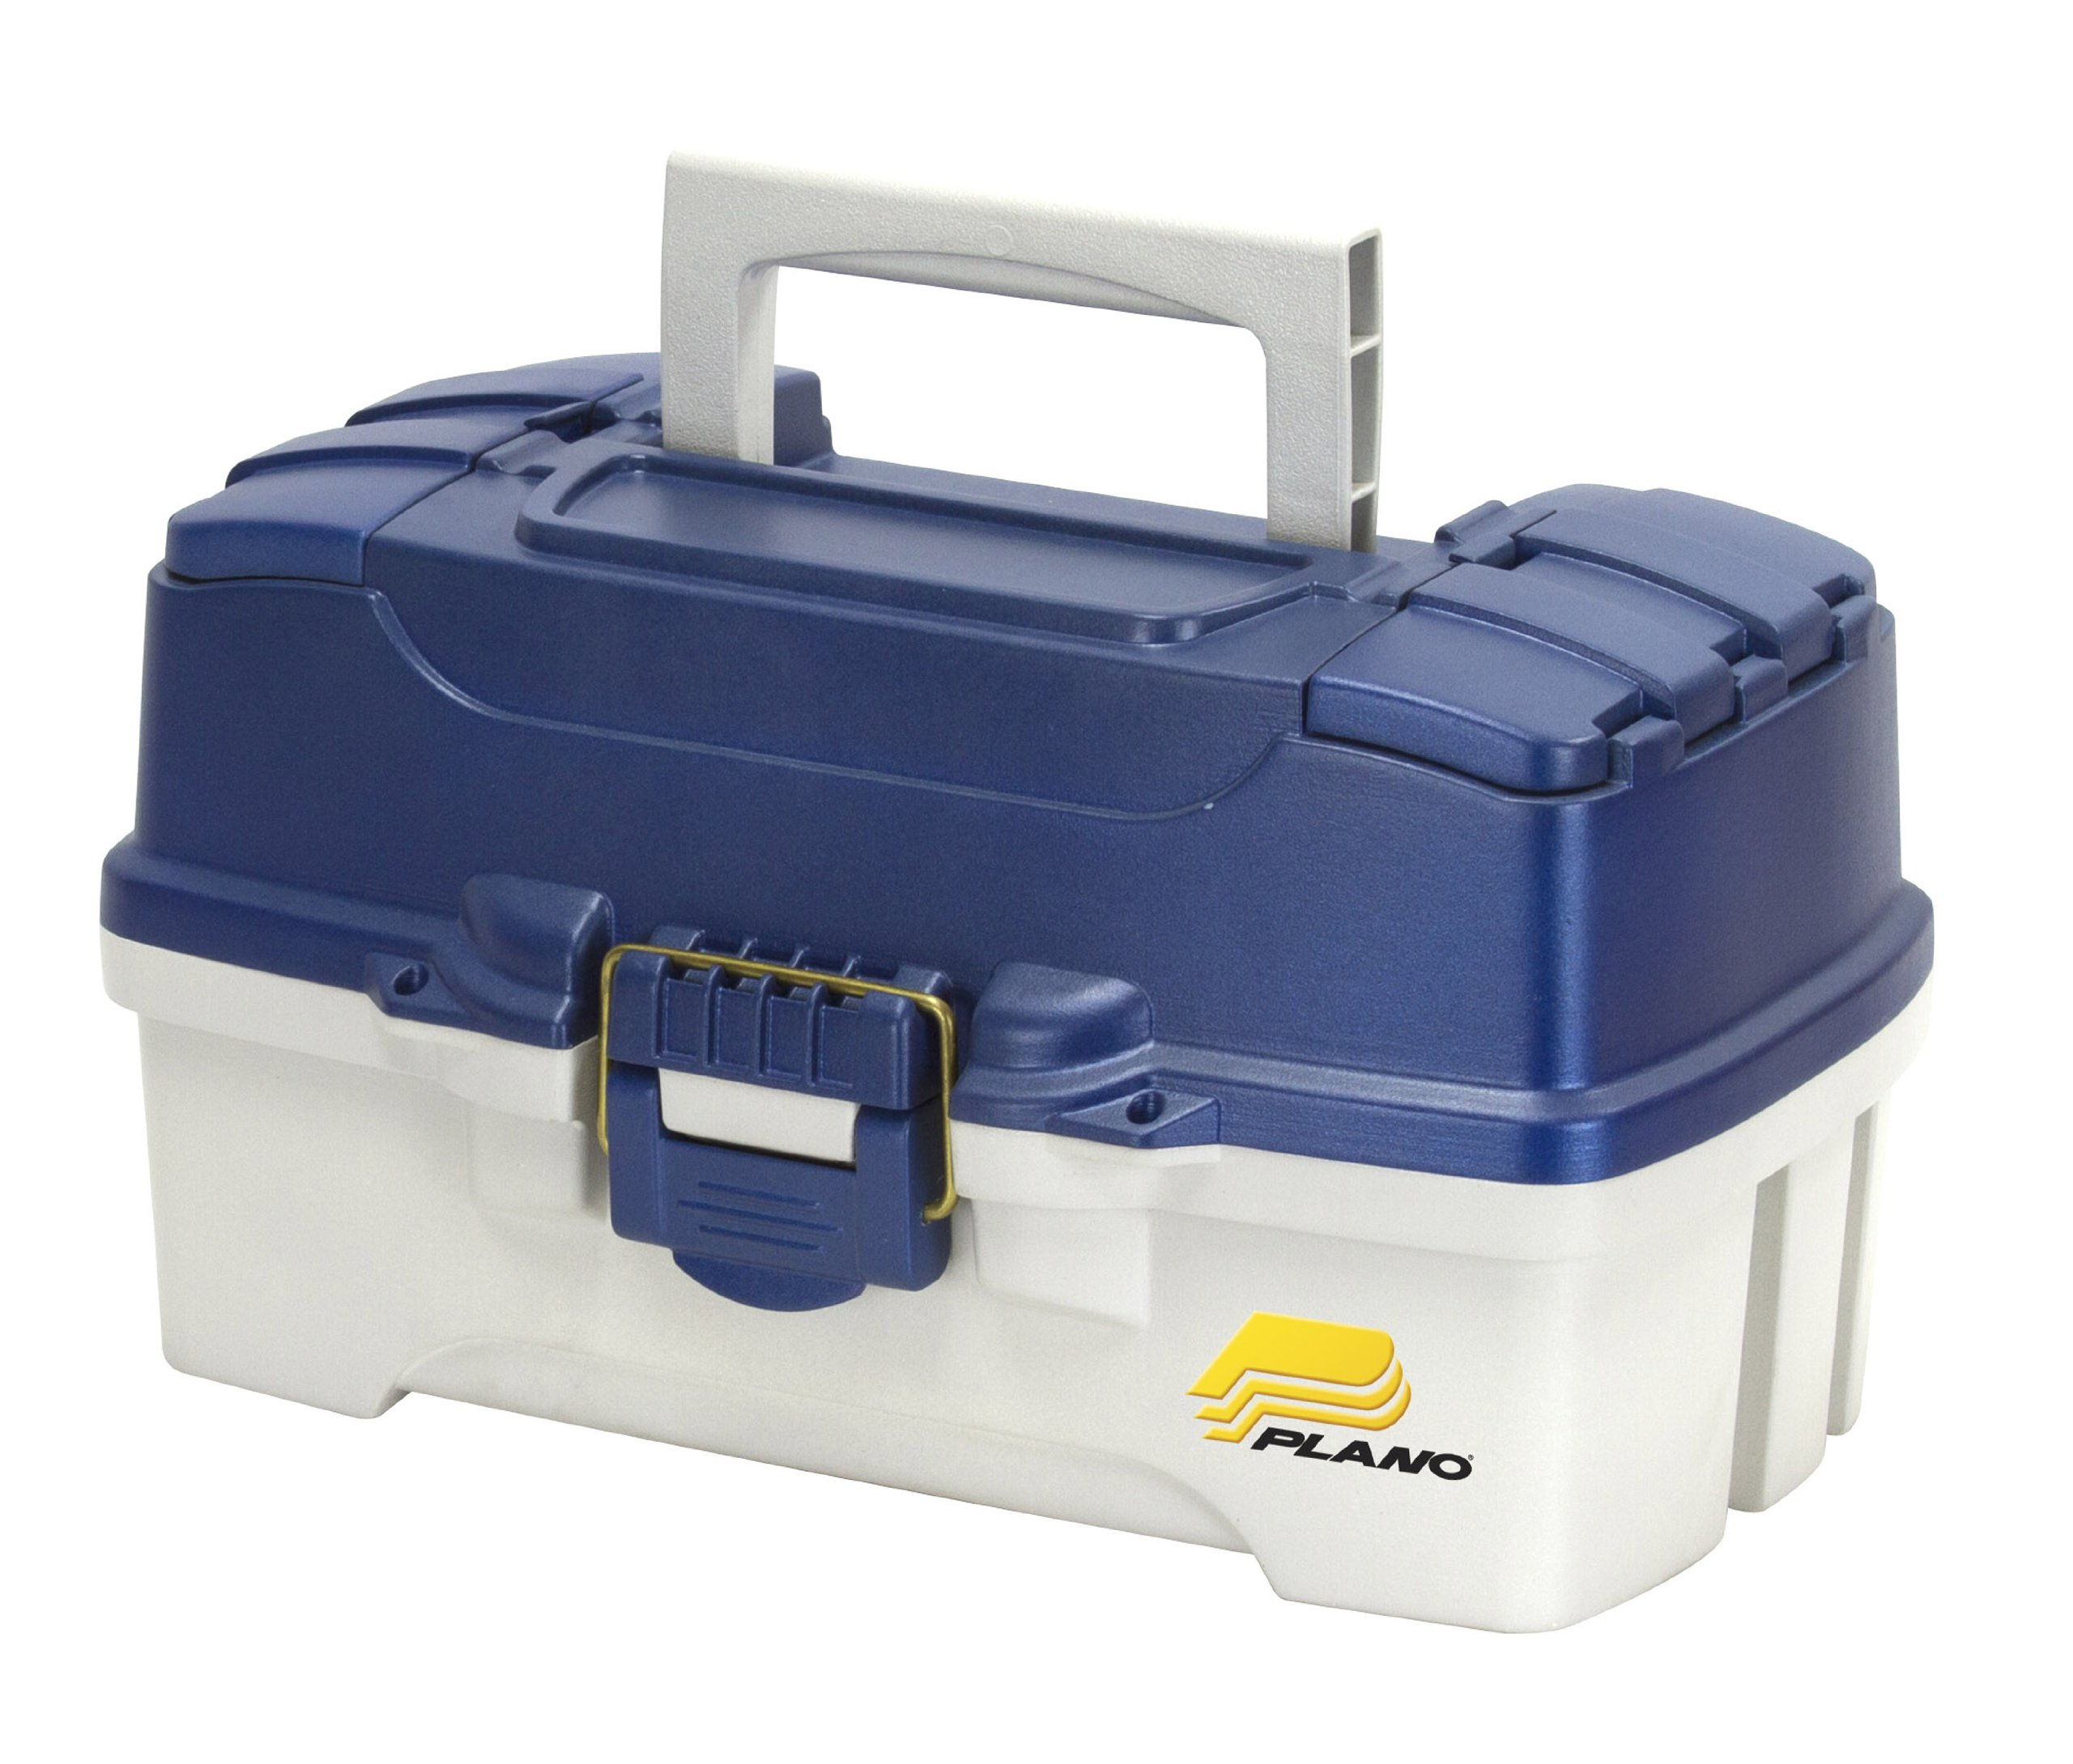 Plano 2-Tray Tackle Box with Dual Top Access, Blue Metallic/Off White, Premium Tackle Storage by Plano